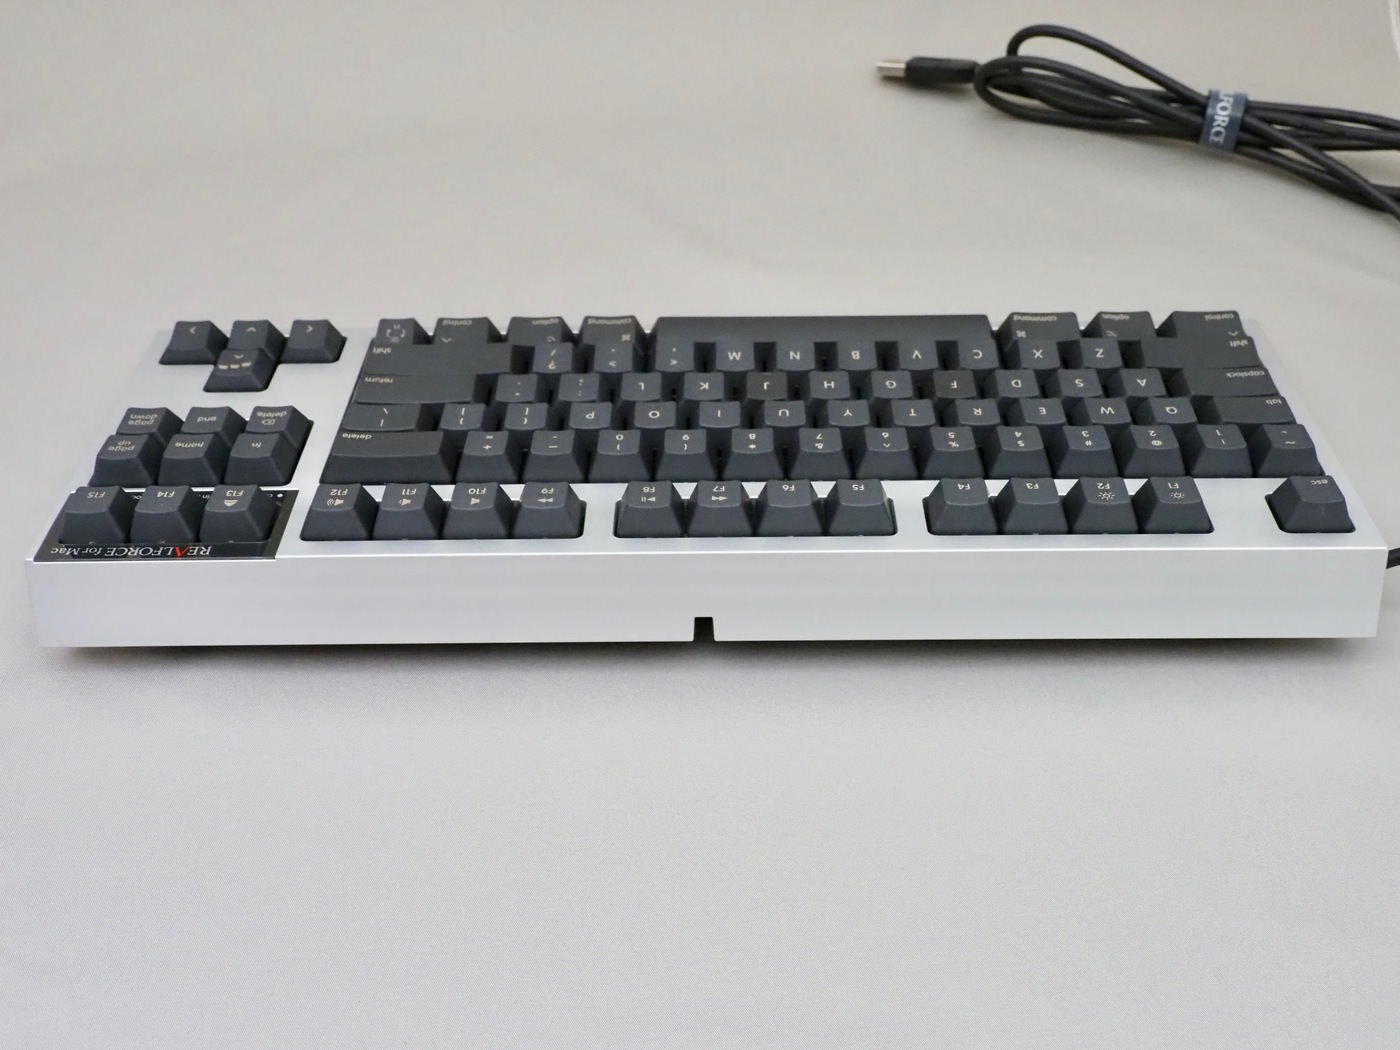 realforce-tkl-for-mac-pfu-limited-edition-review_00031